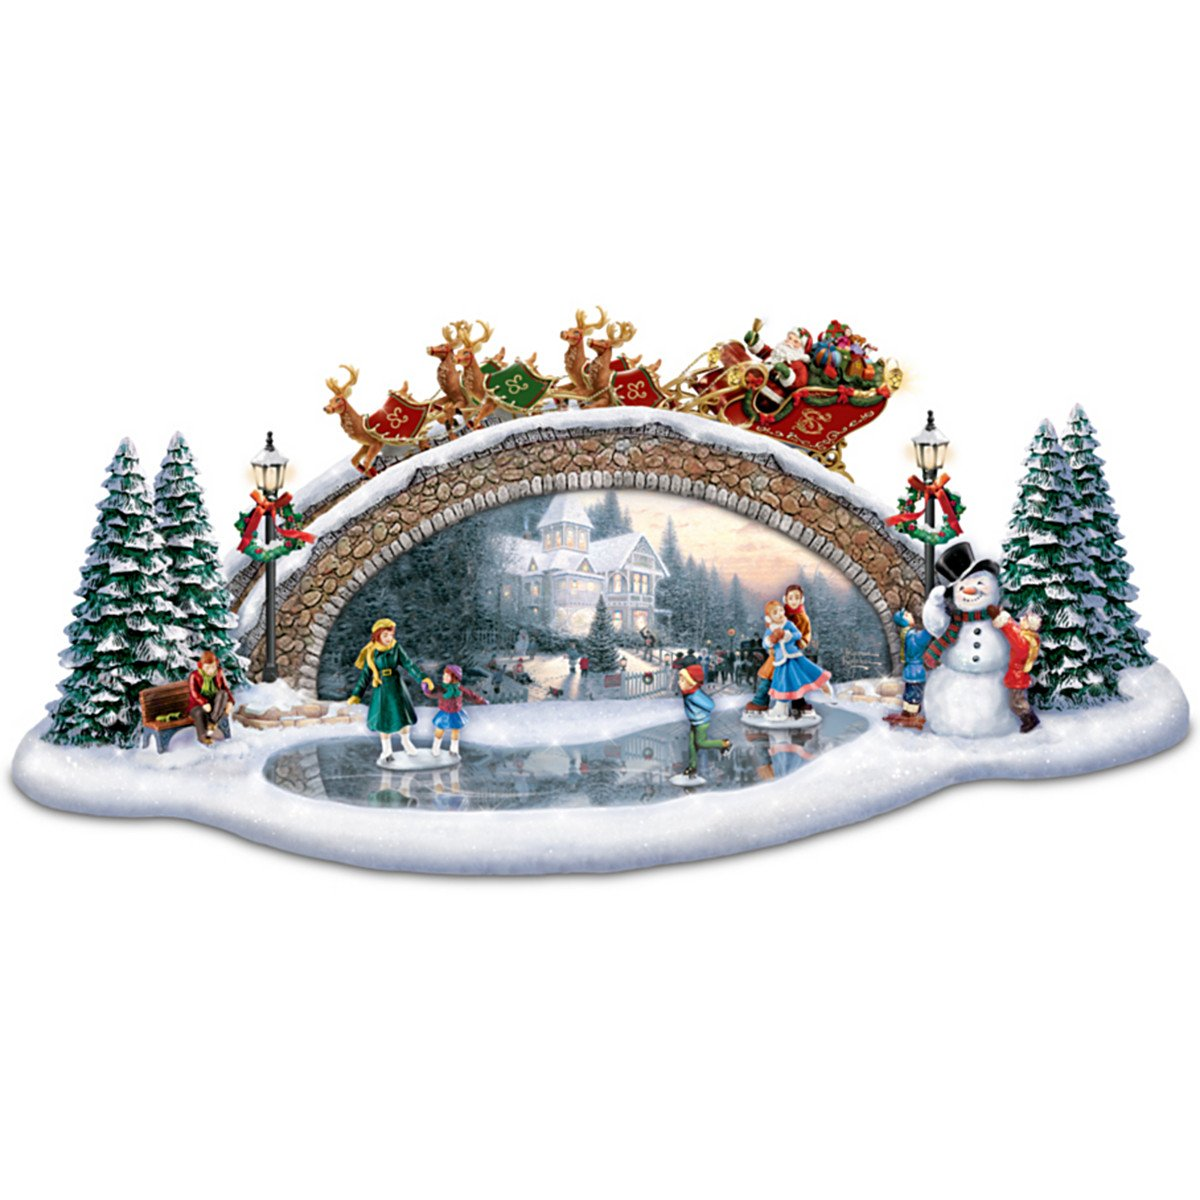 Amazon.com: Thomas Kinkade Christmas Decor Bridge Sculpture: Light ...